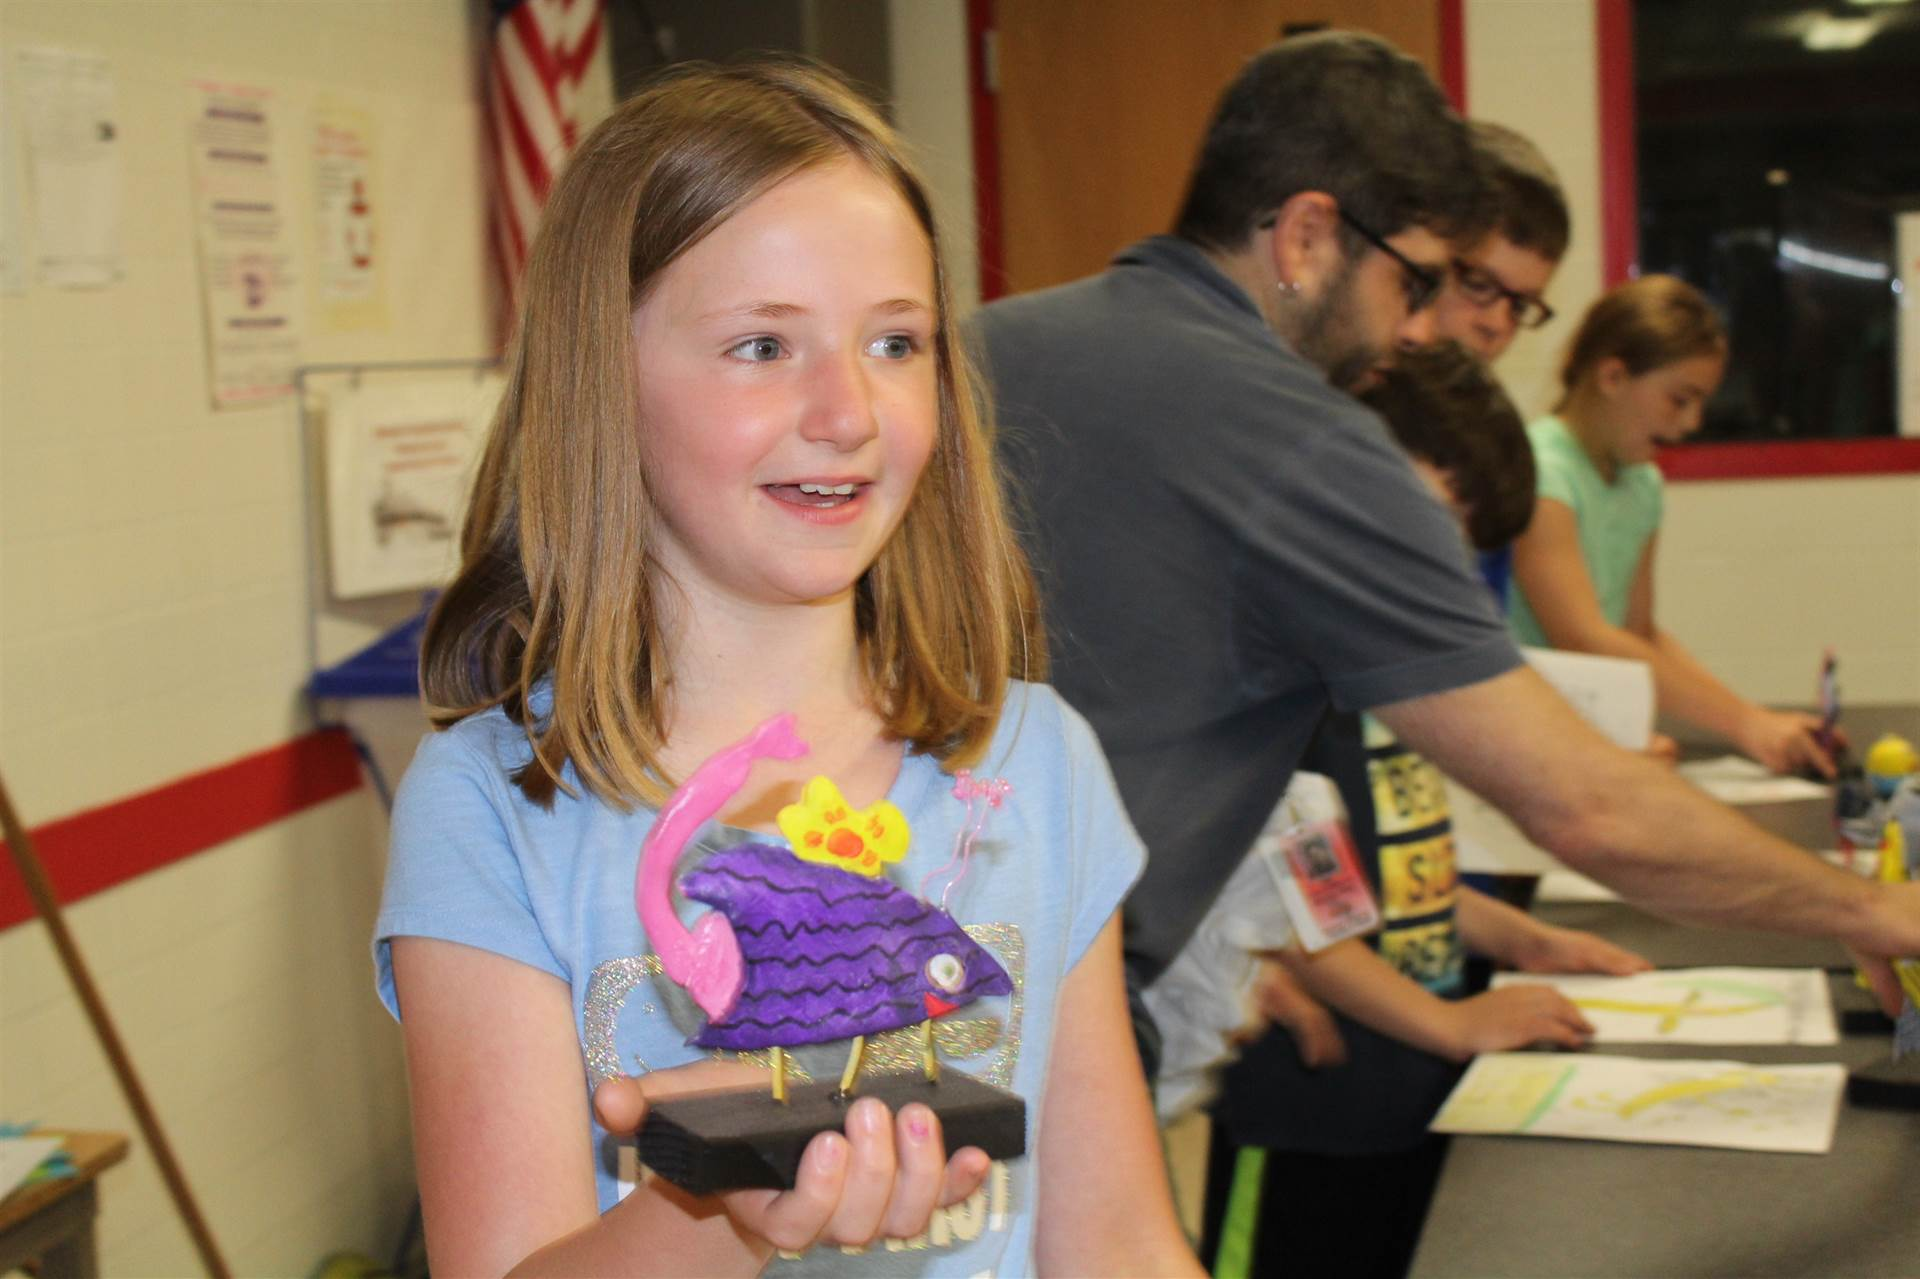 girl in blue shirt from sixth table smiles holding 3 d monster mash reveal sculpture